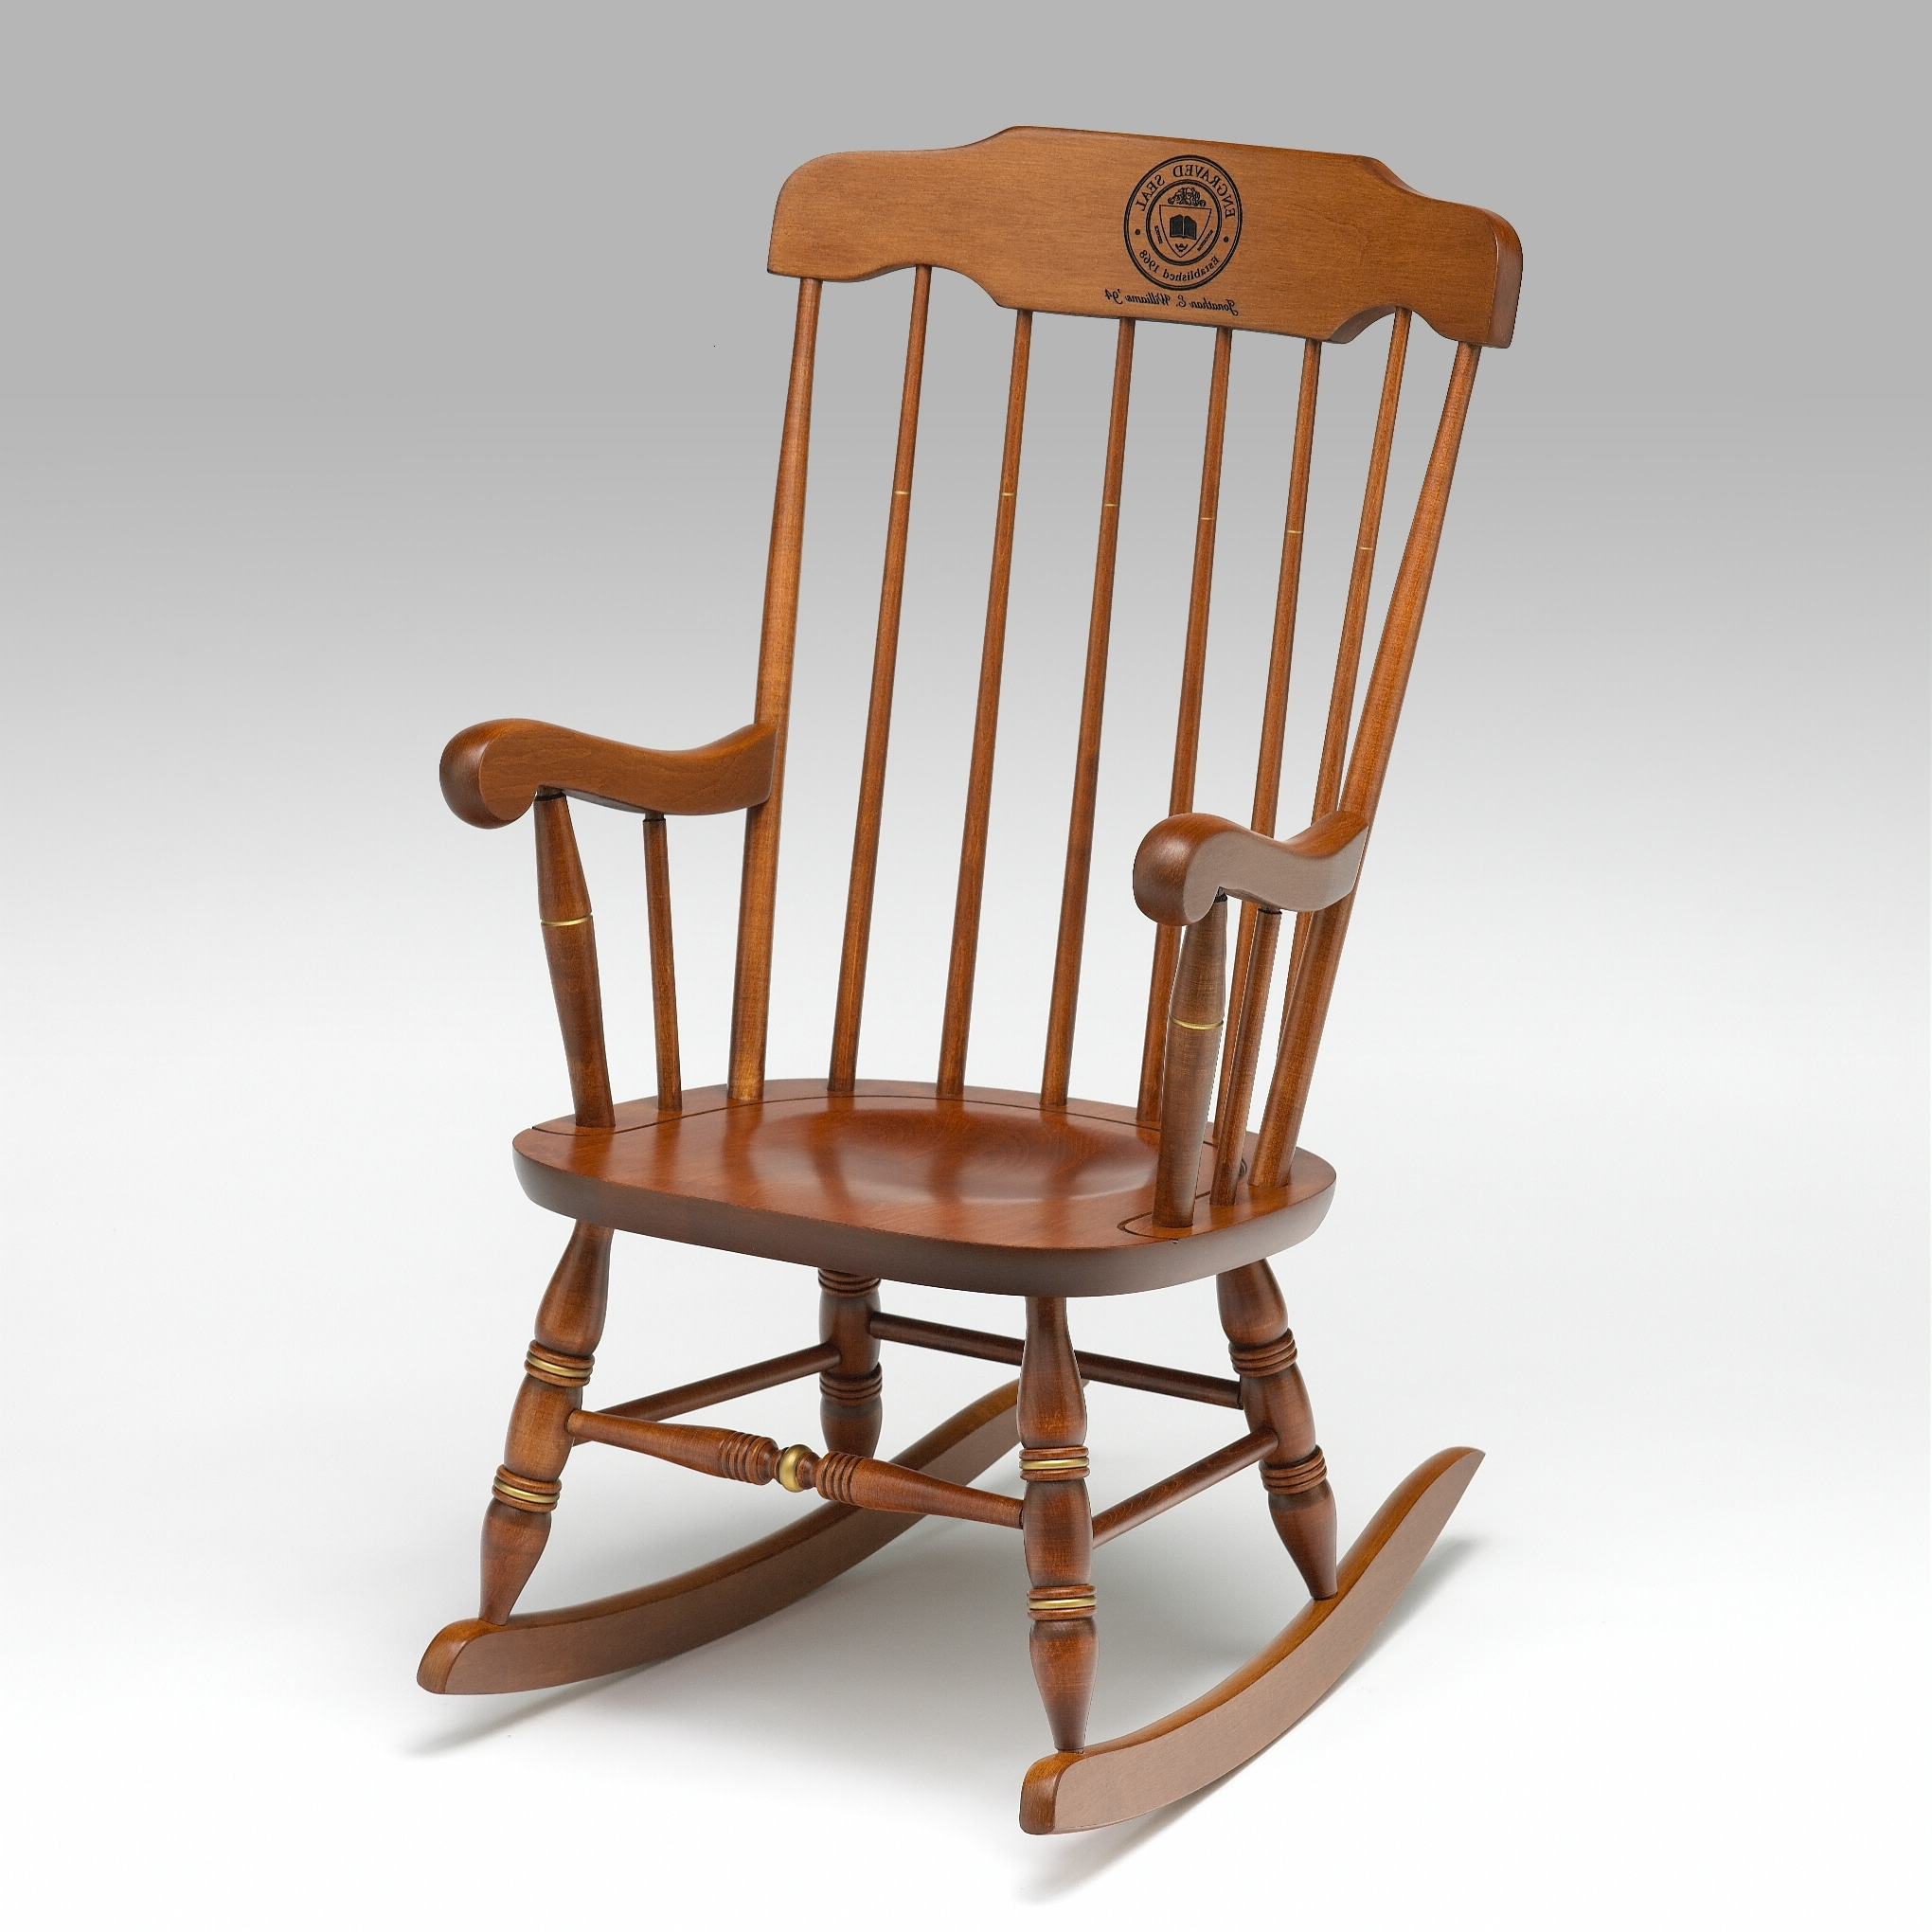 Help Me Safely Disassemble A Rocking Chair – Furniture Dit Within Famous Rocking Chairs (View 6 of 15)